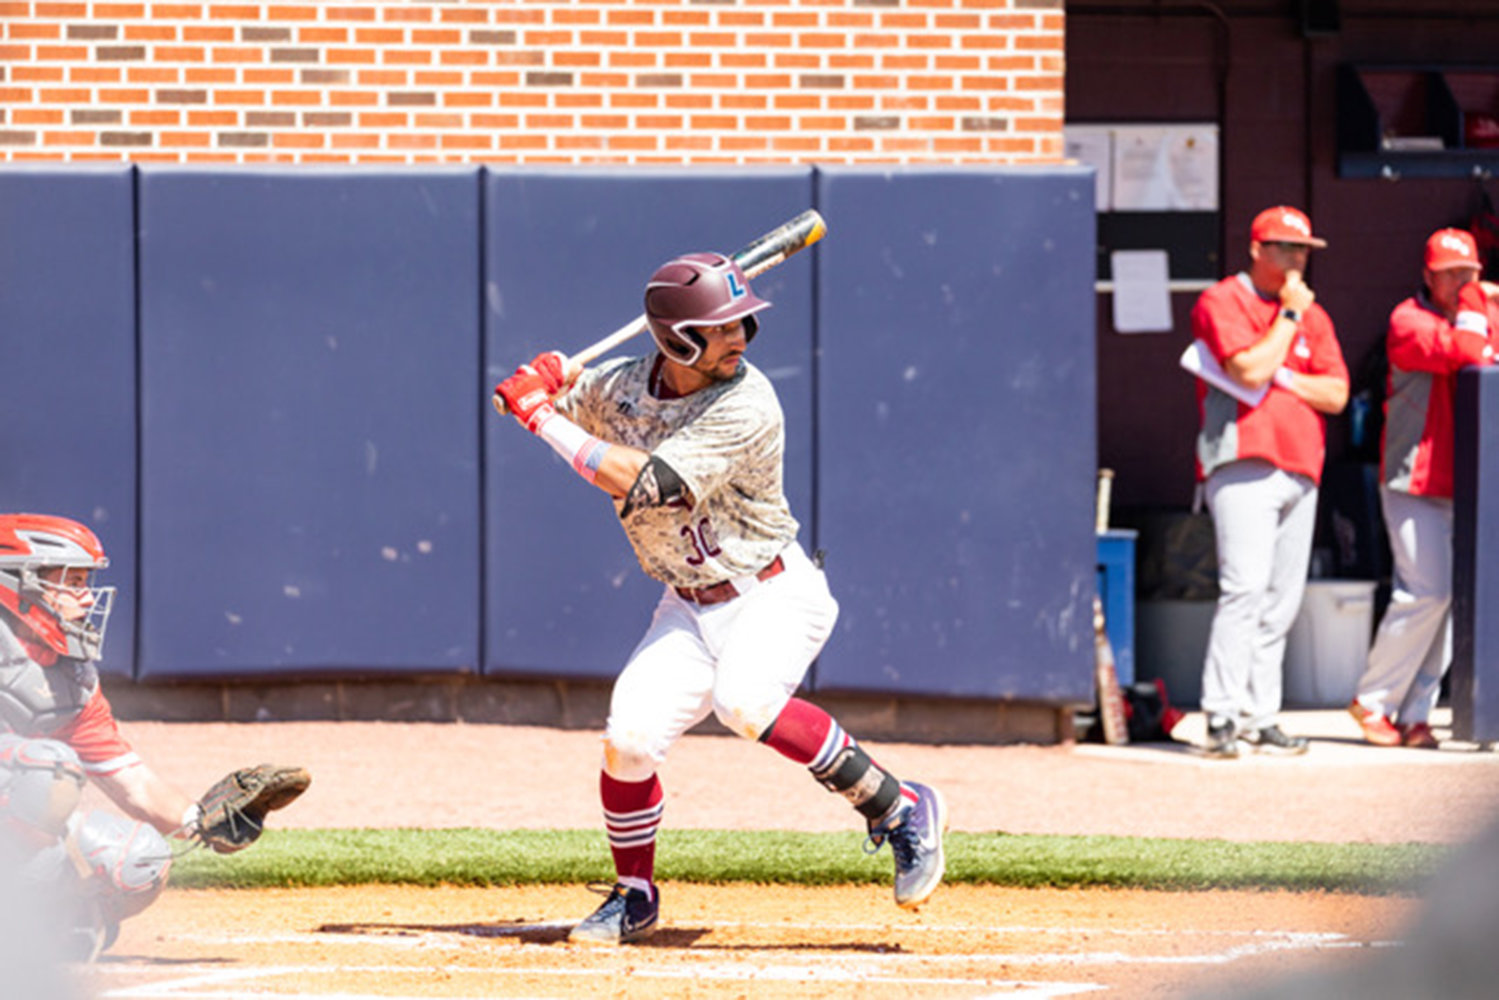 Senior Miguel Pimentel hit a three-run home run in game one and score twice in game two for the Flames.